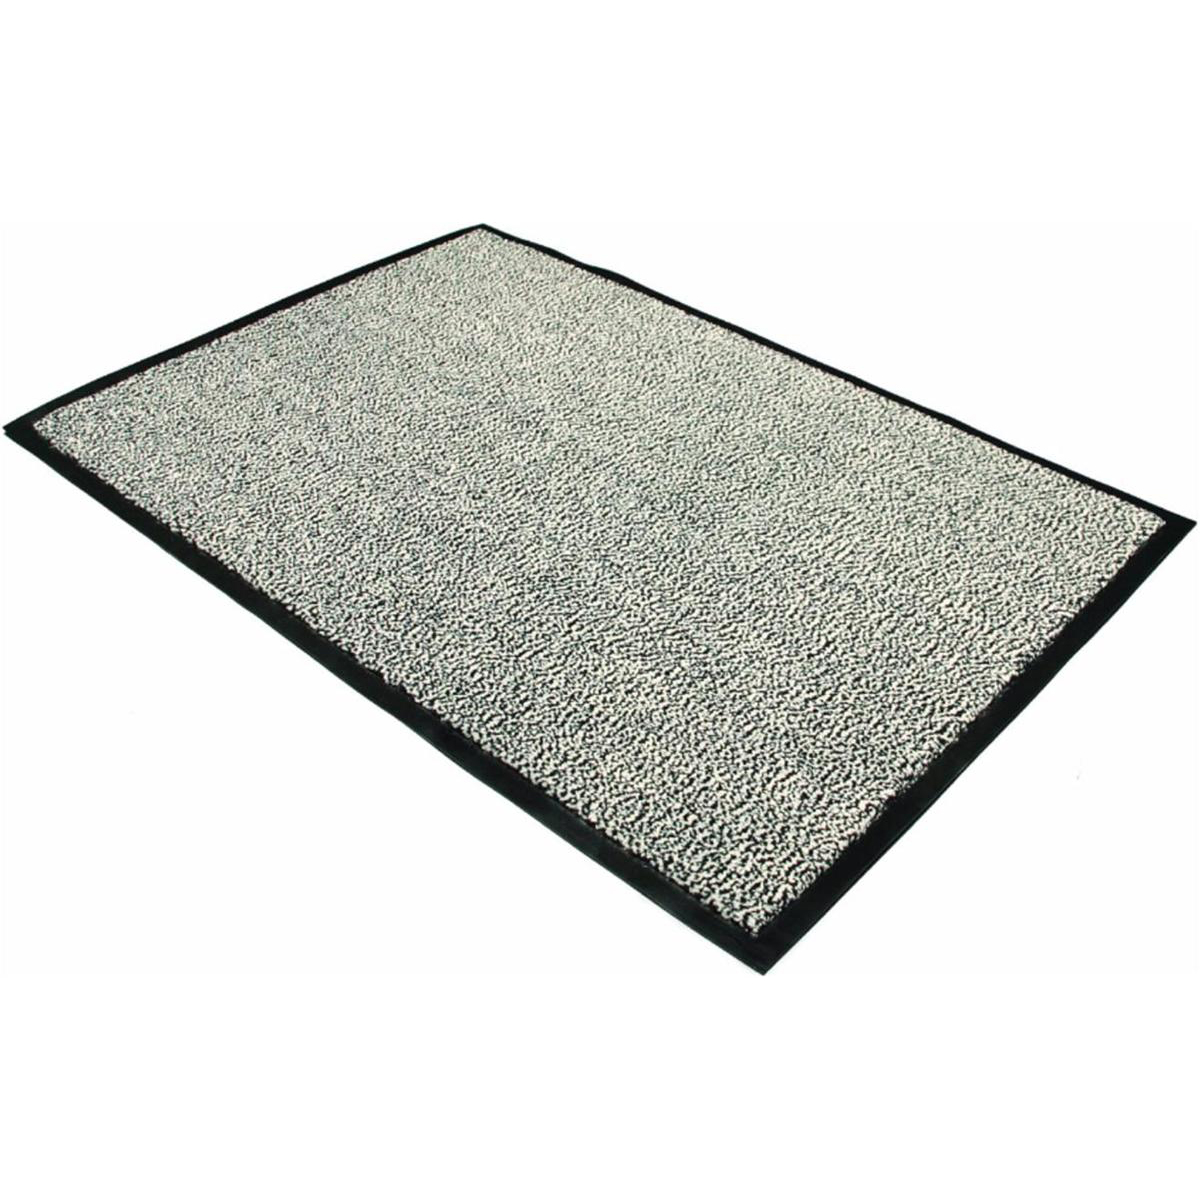 Doortex Advantagemat Door Mat Dust & Moisture Control Polypropylene 600x900mm Anthracite Ref FC46090DCBWV